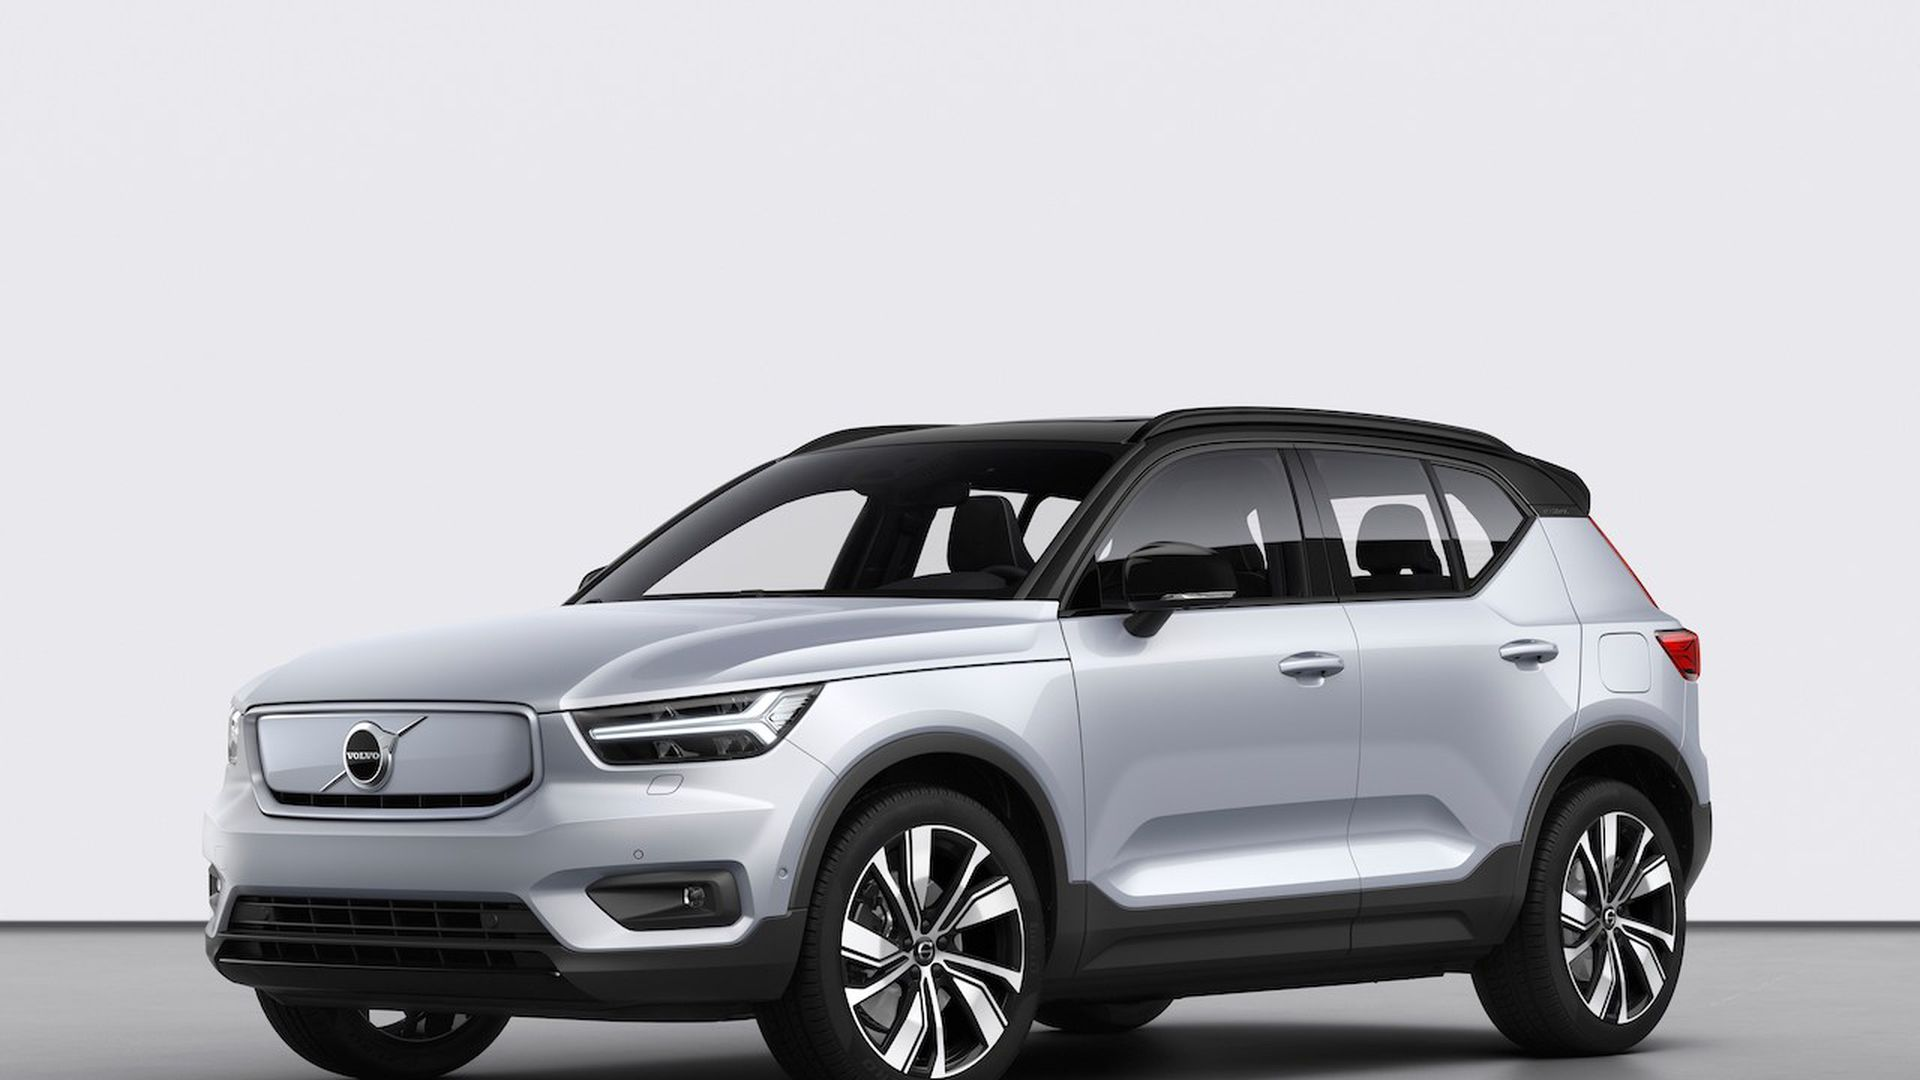 Photo of Volvo's new XC40 Recharge electric SUV.